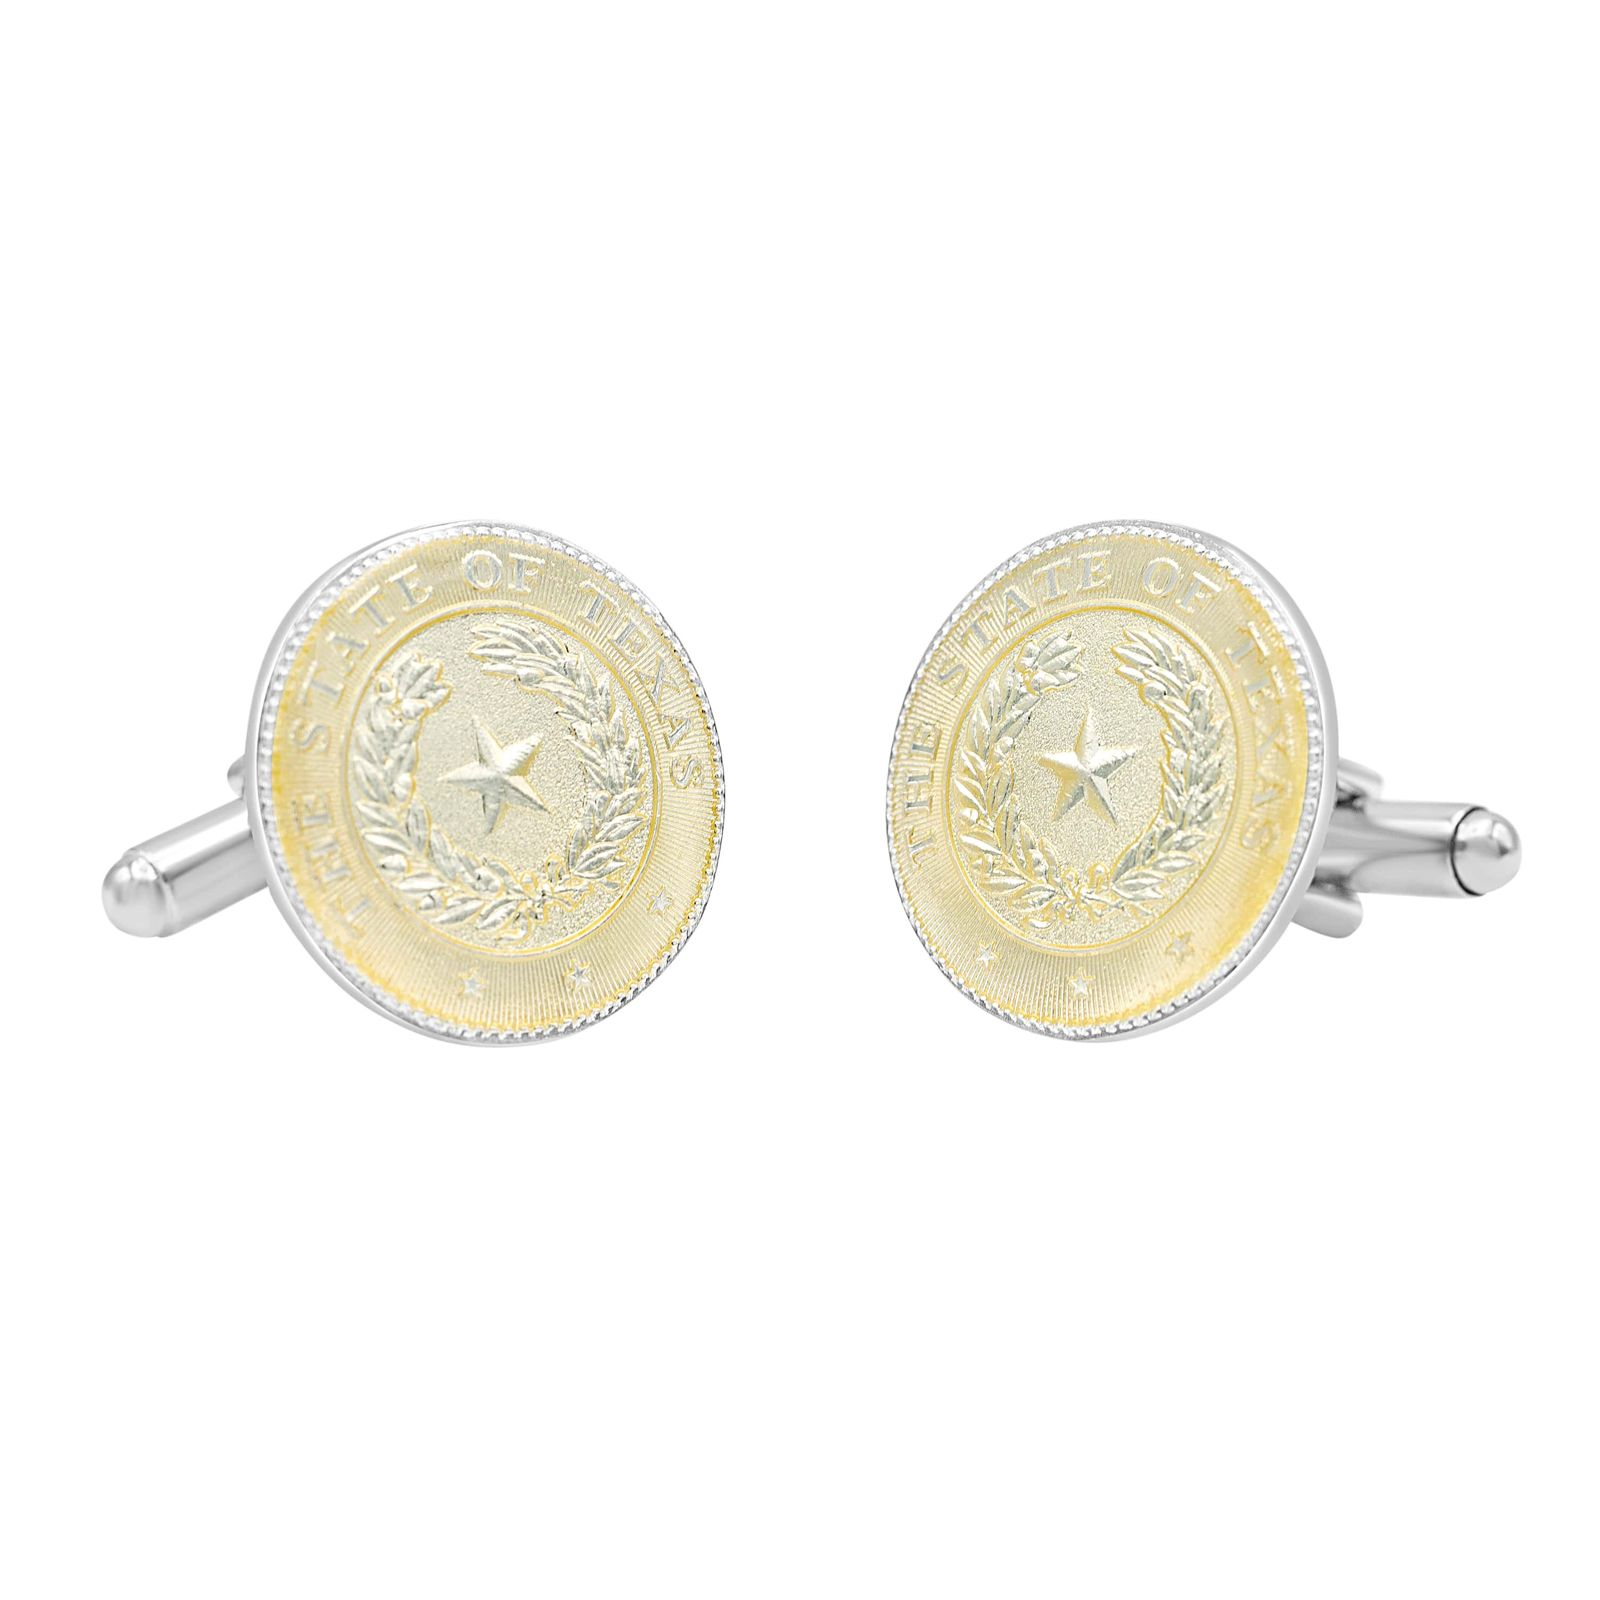 Texas State Seal Two-Tone Cuff Links